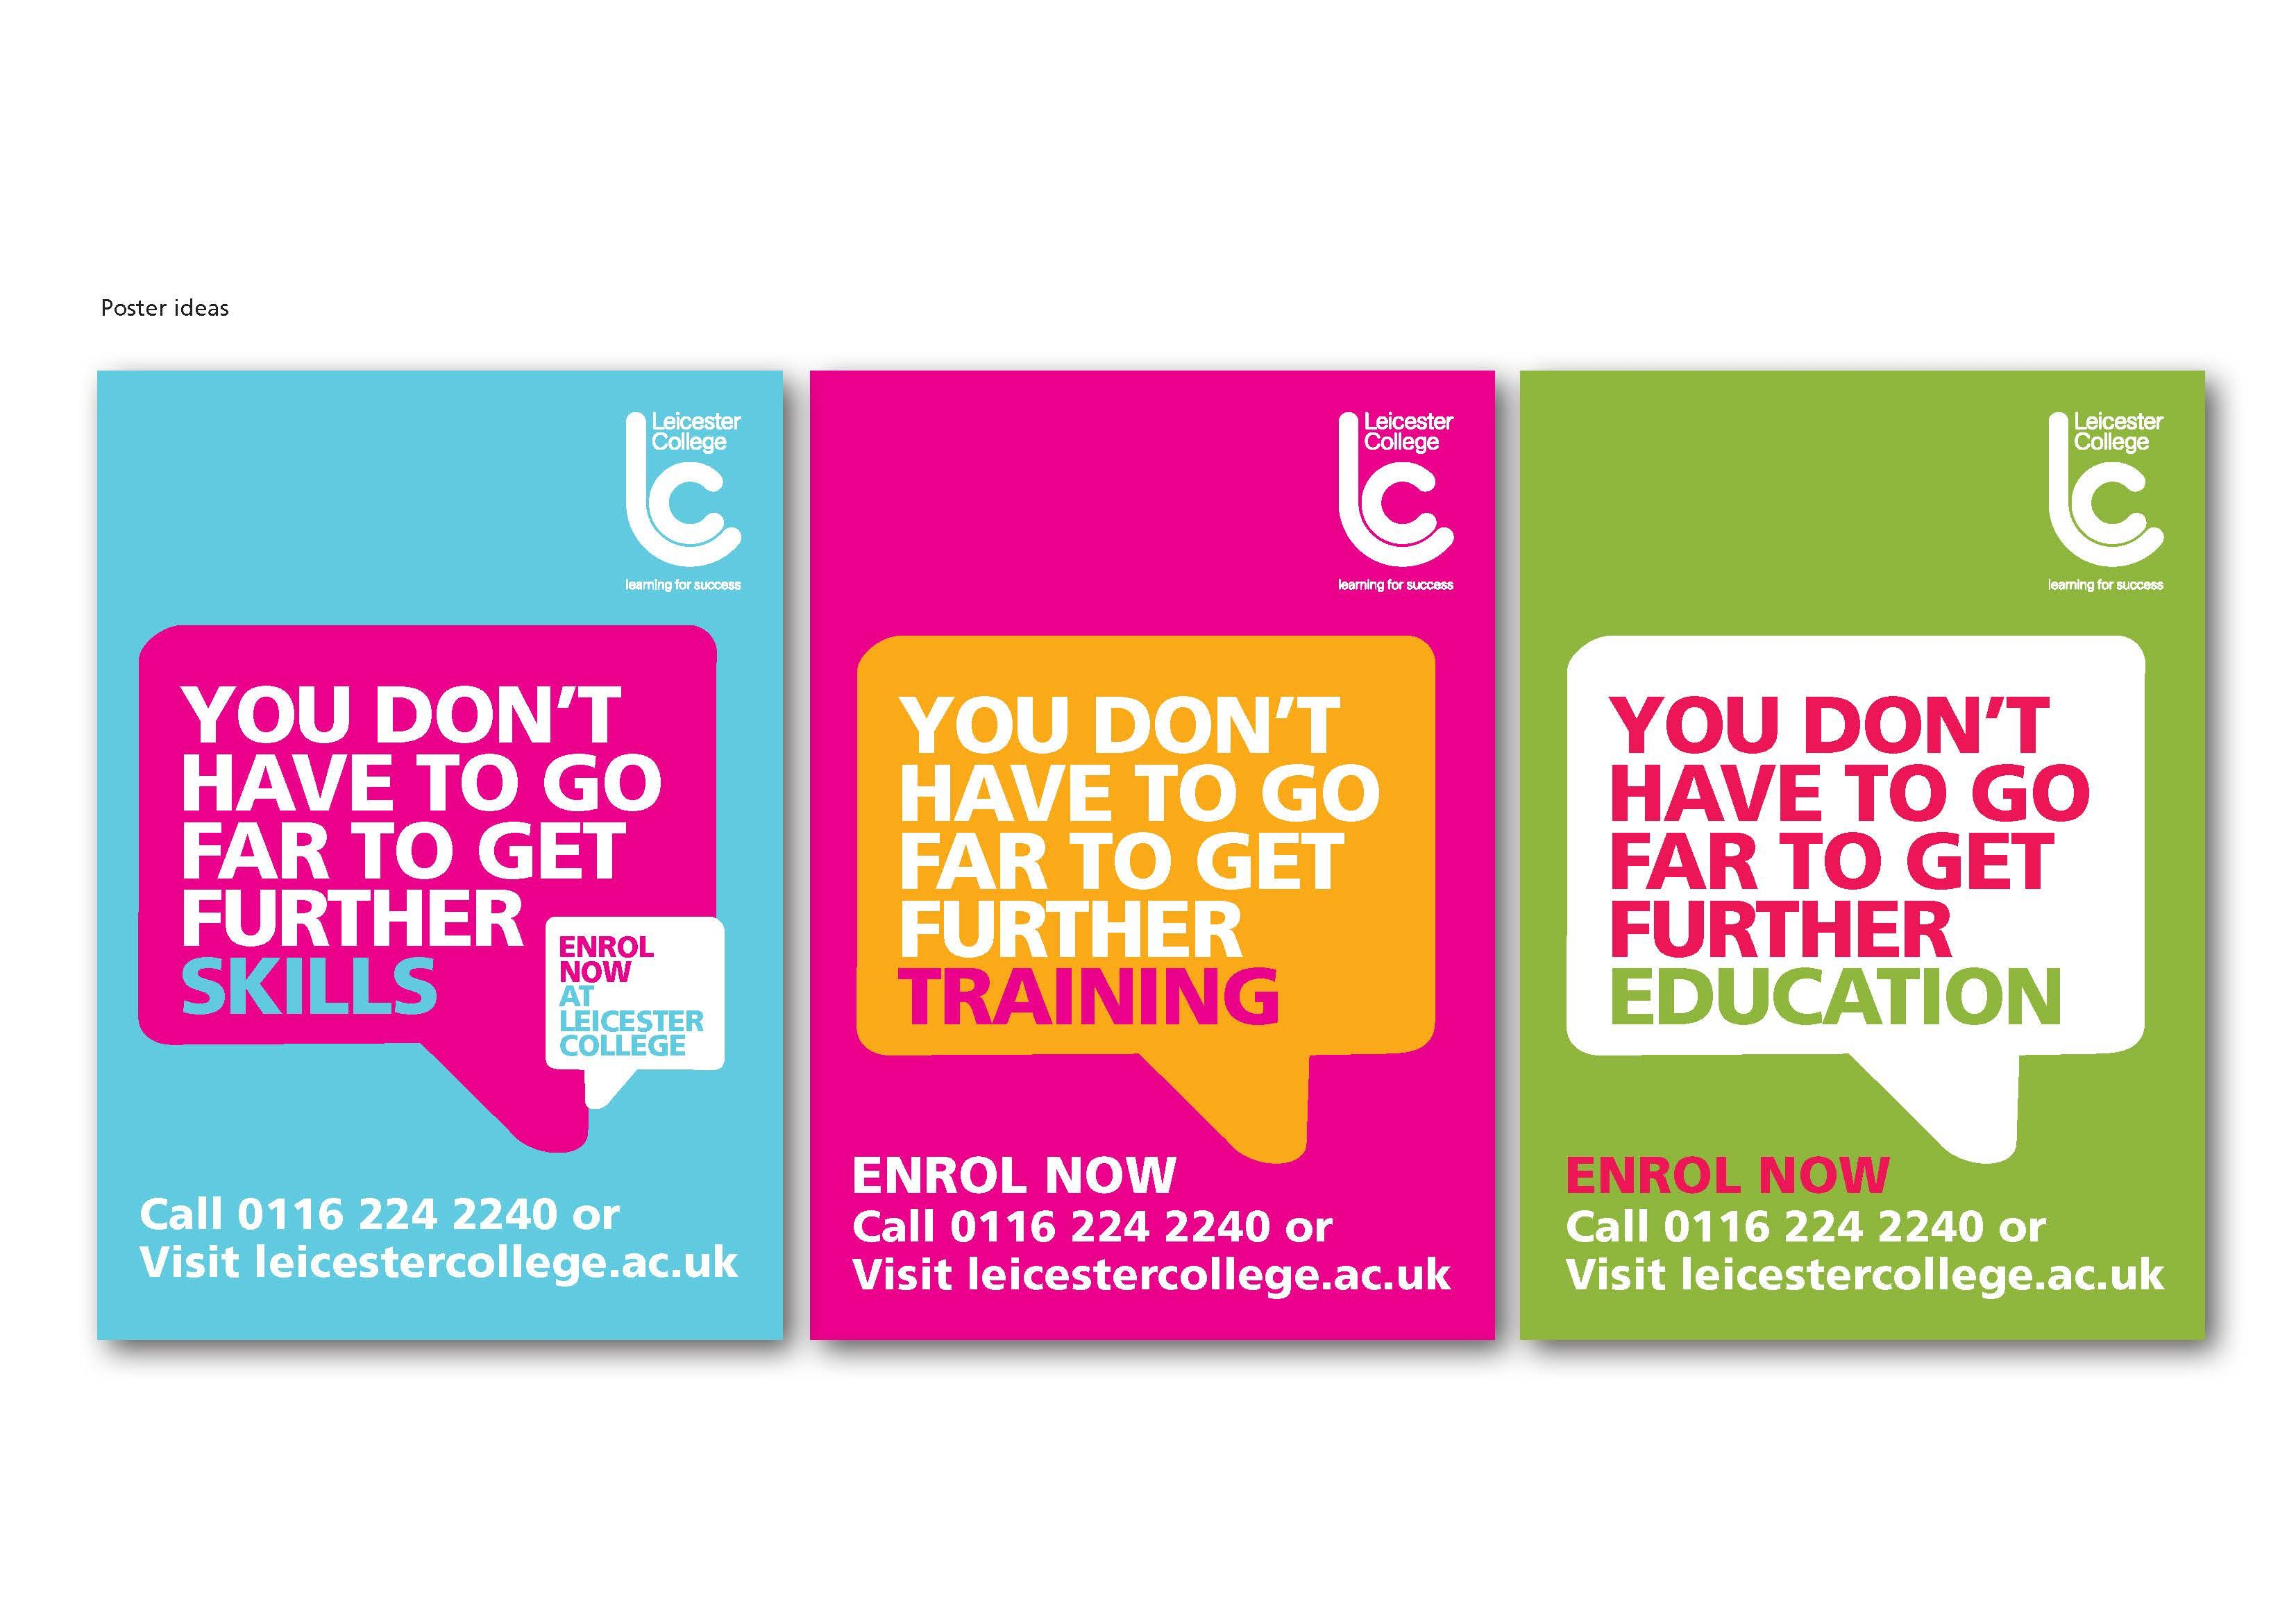 Summer Recruitment Campaign Idea Education College How To Get Education